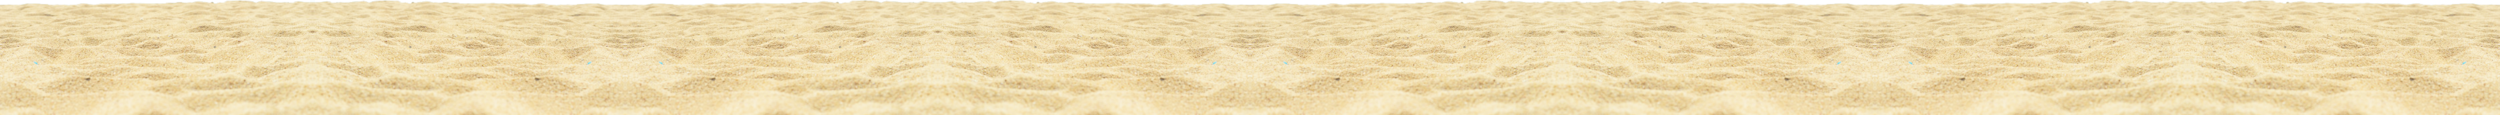 sand-test.png